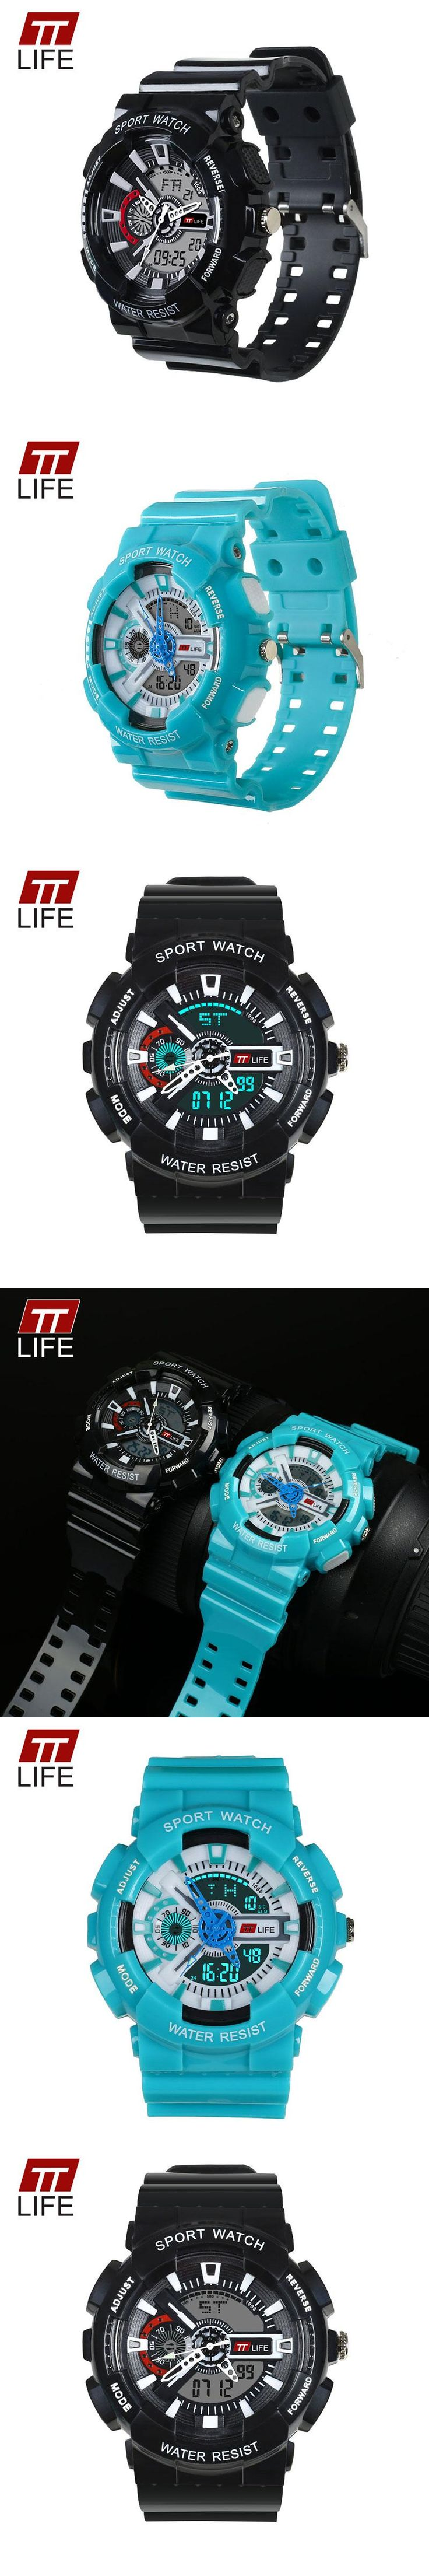 TTLIFE 2017 Brand Watches Mens LED Digital Watch G Style Watch Waterproof Sport Military Shock Watches for Men relojes hombre